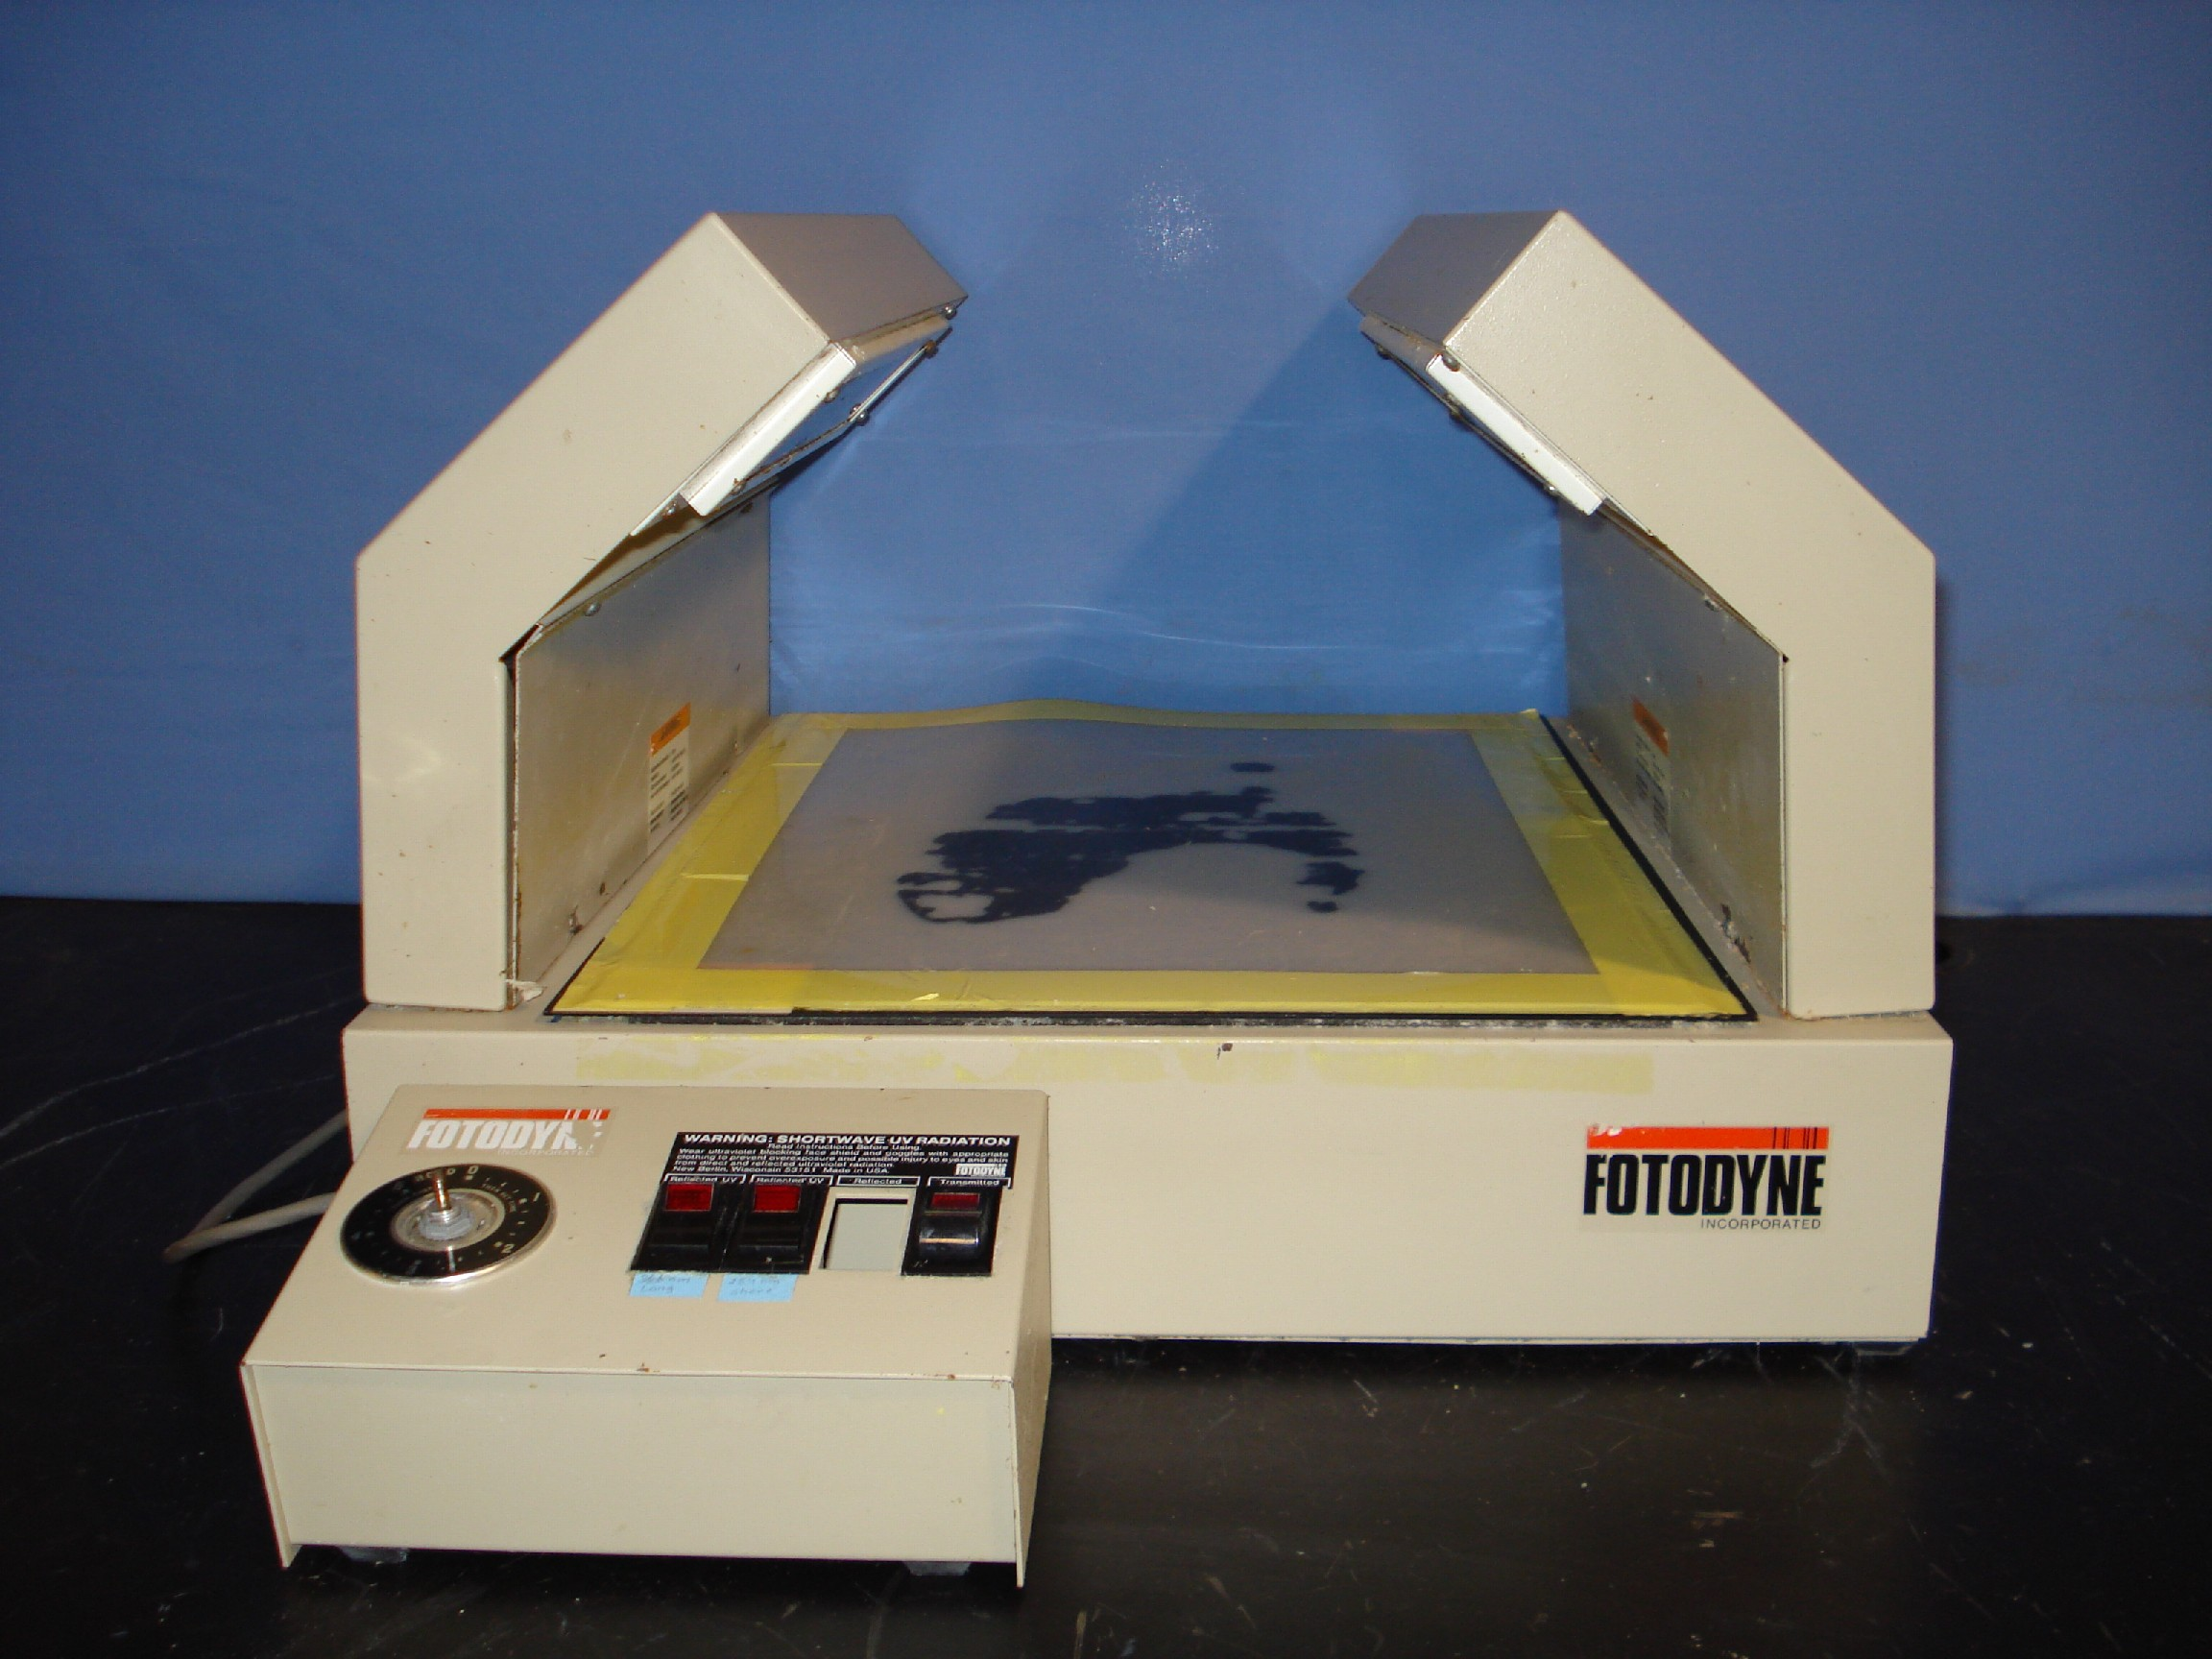 Fotodyne UV Light Box Model 3-4500 Image